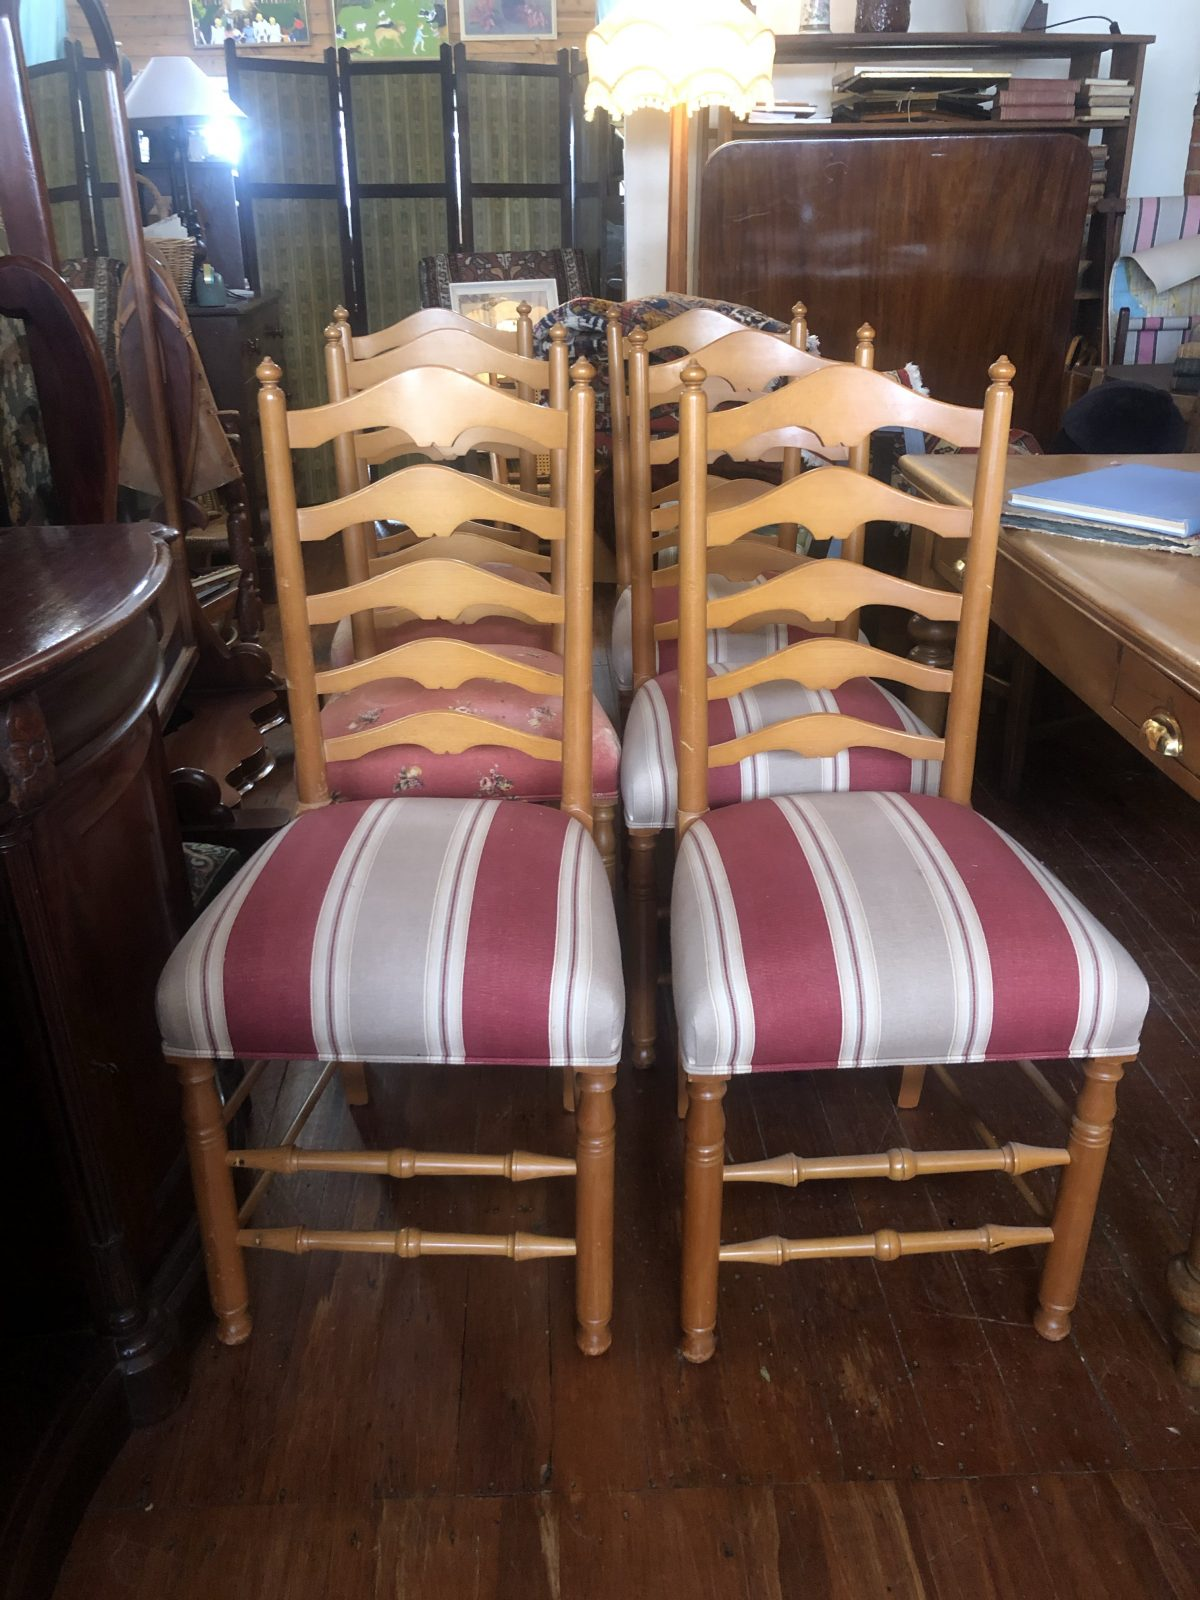 192. Ladder Back Chairs